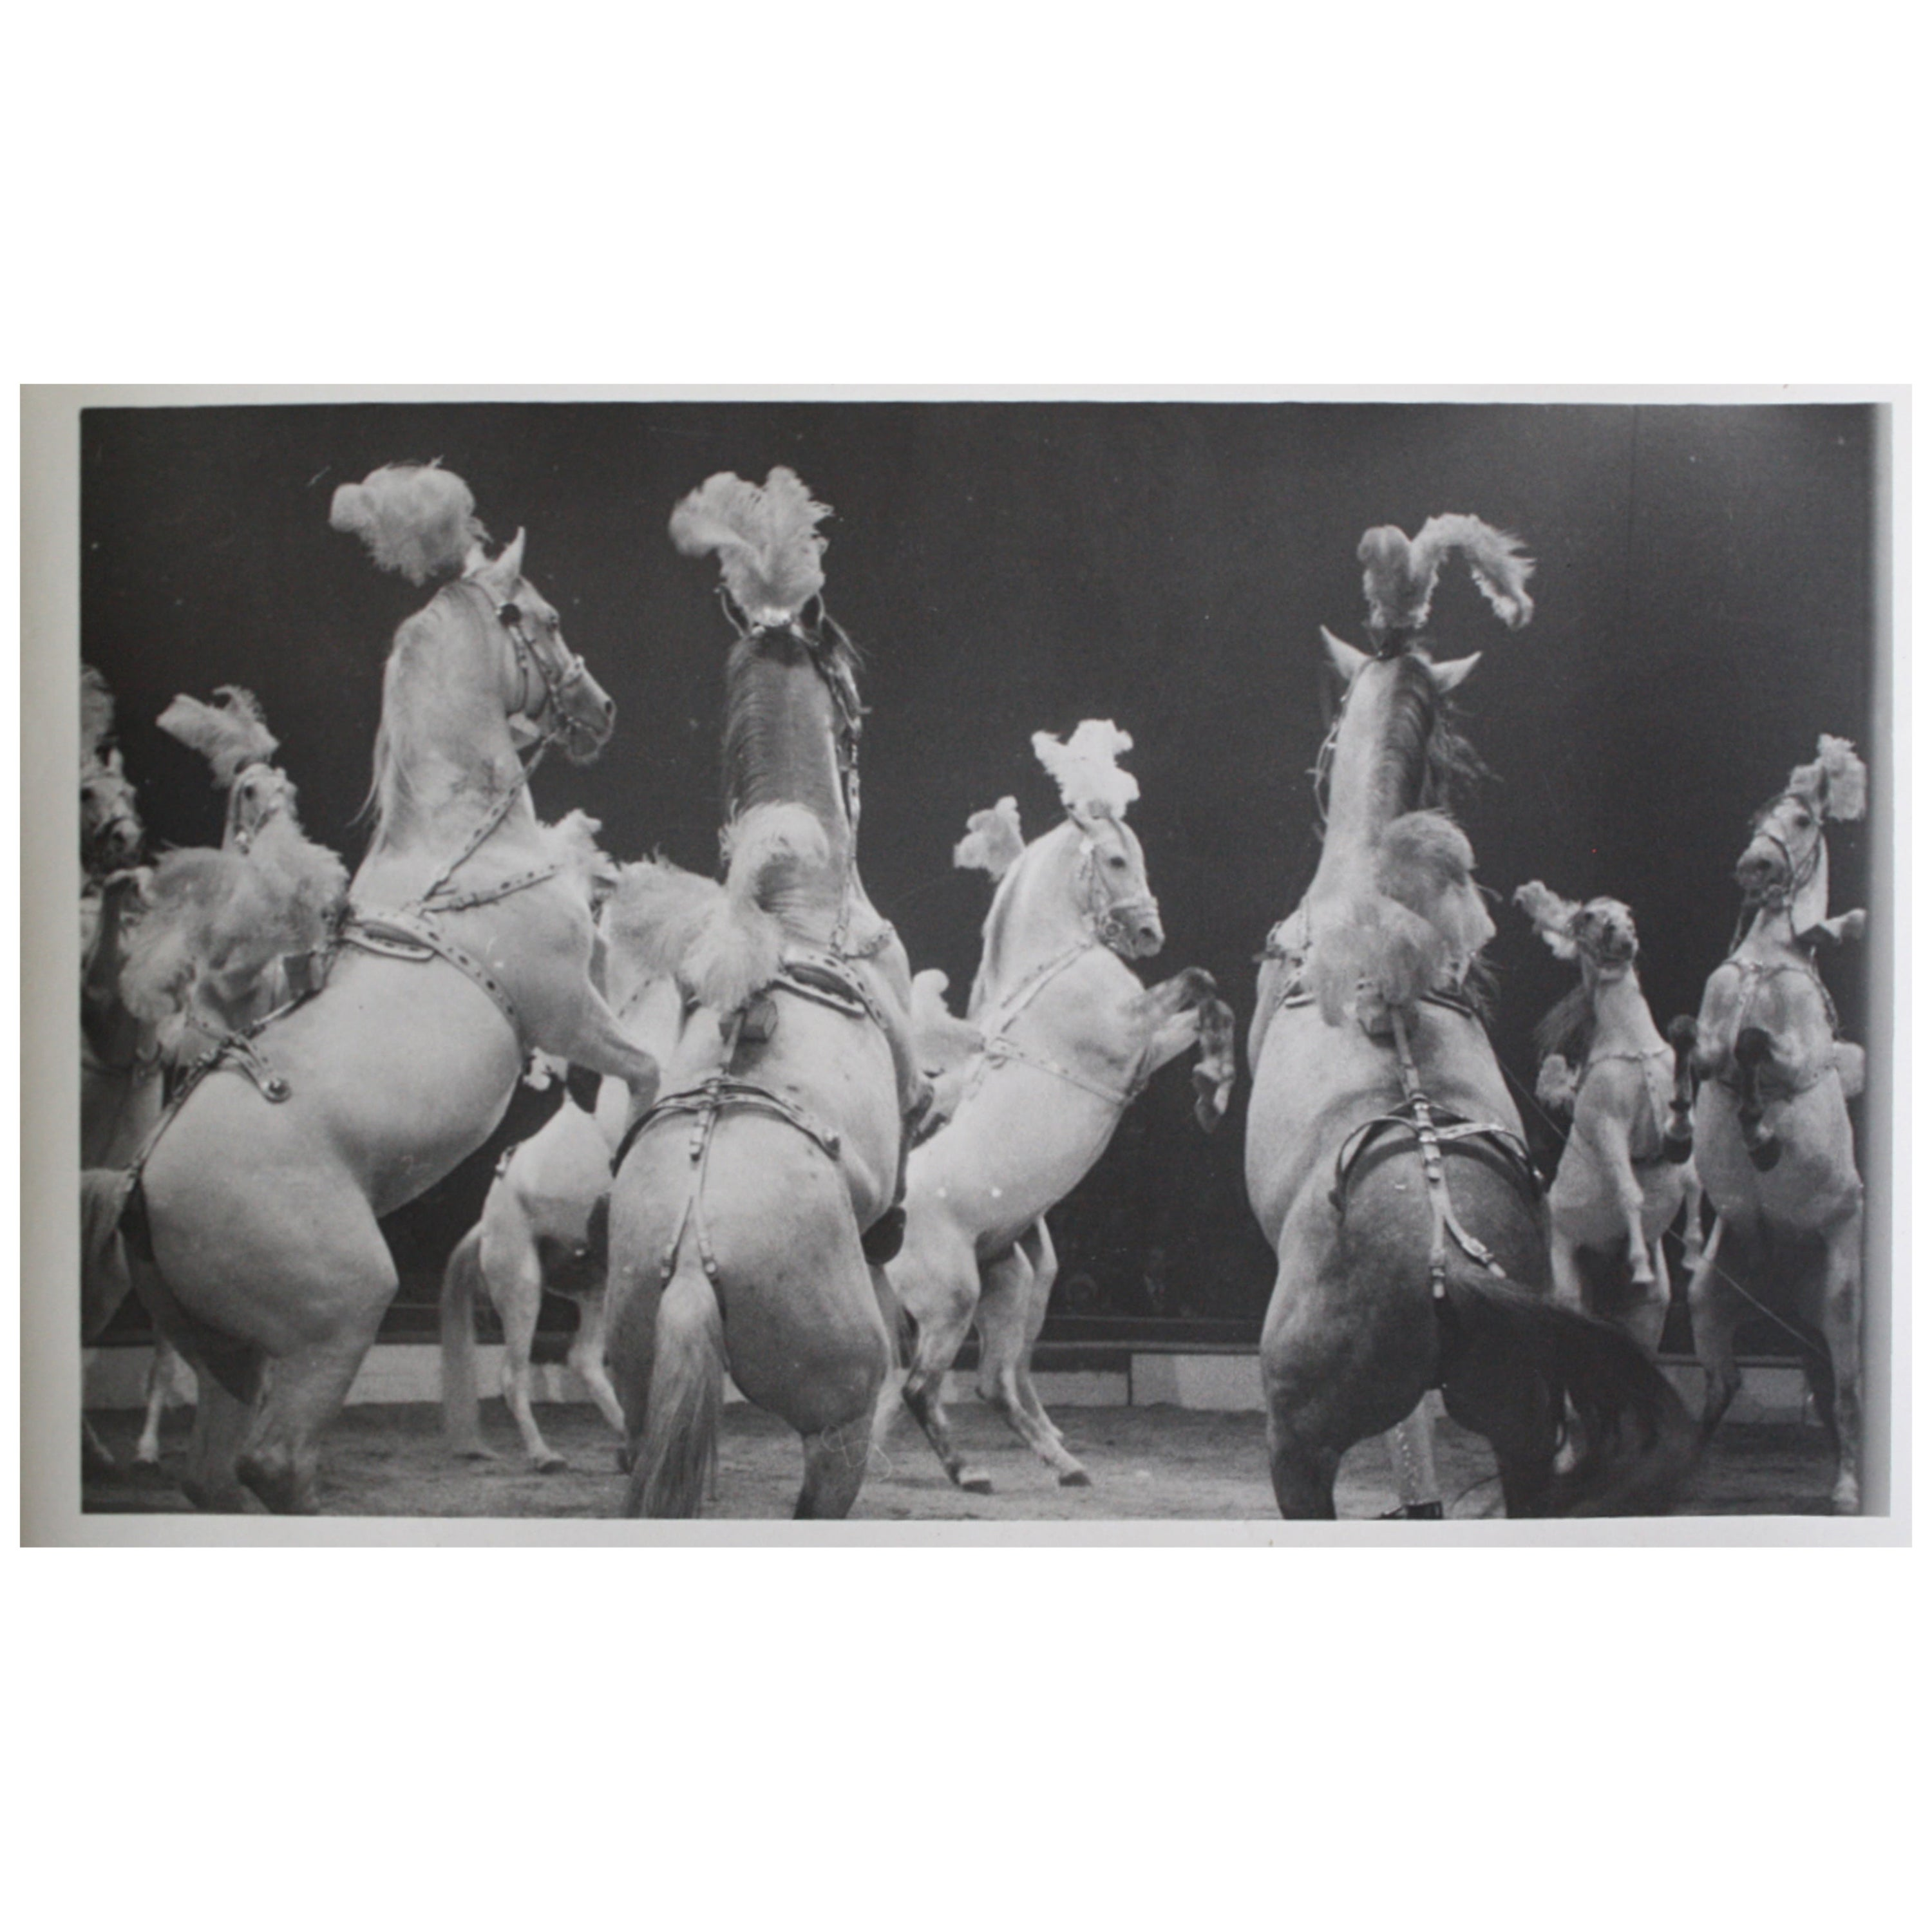 Circus Gelatin Silver Prints Photography in the Manner of Kurt Hutton circa 1940